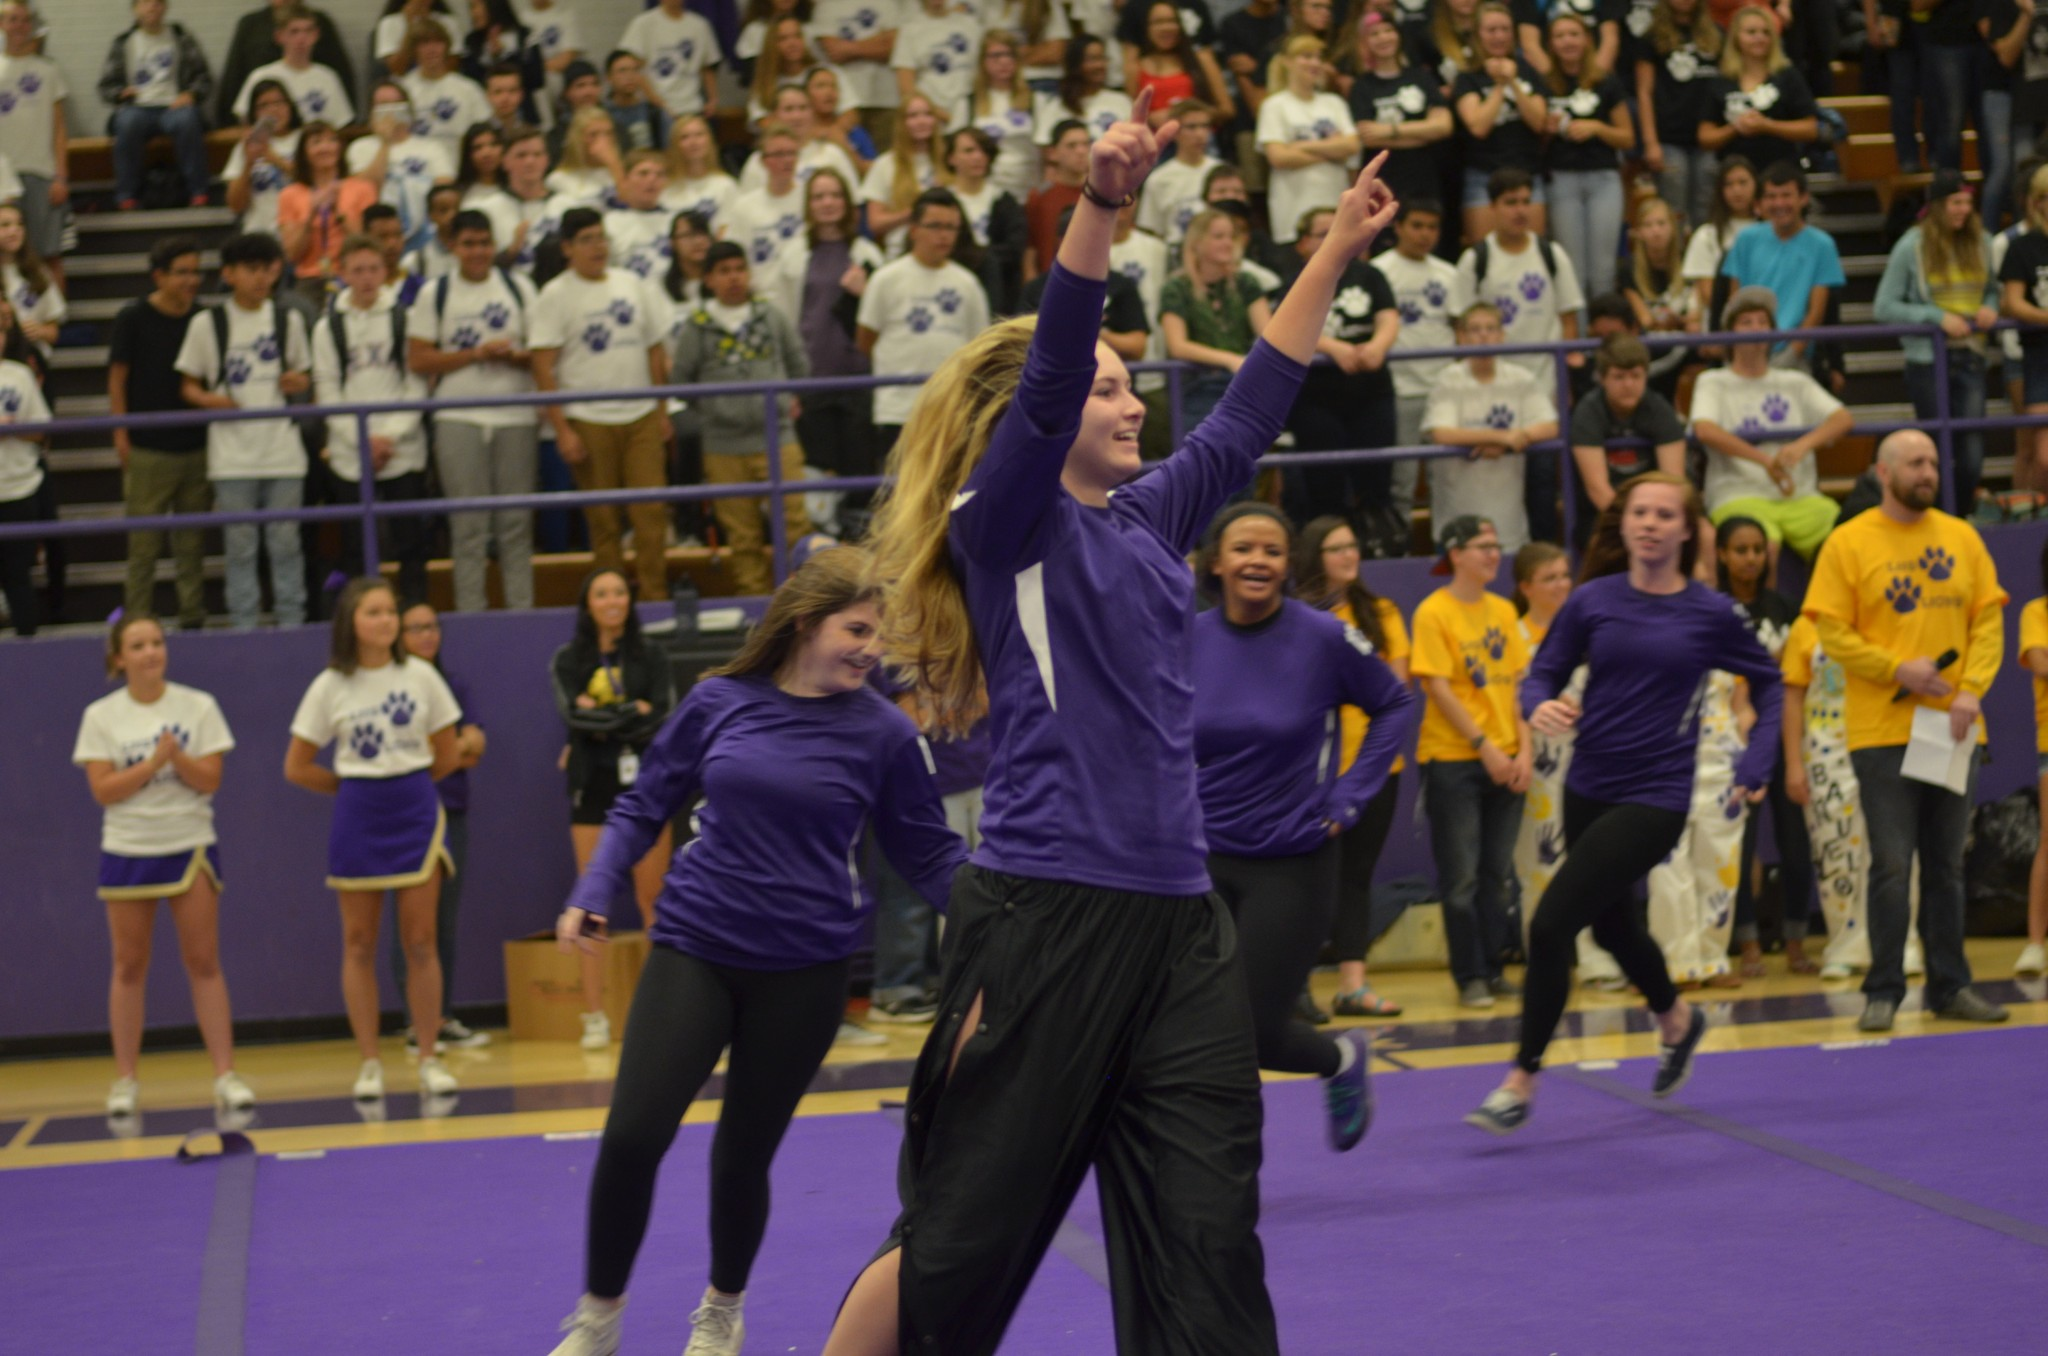 Senior Mallory Burbage leads the volleyball team in their cheer.